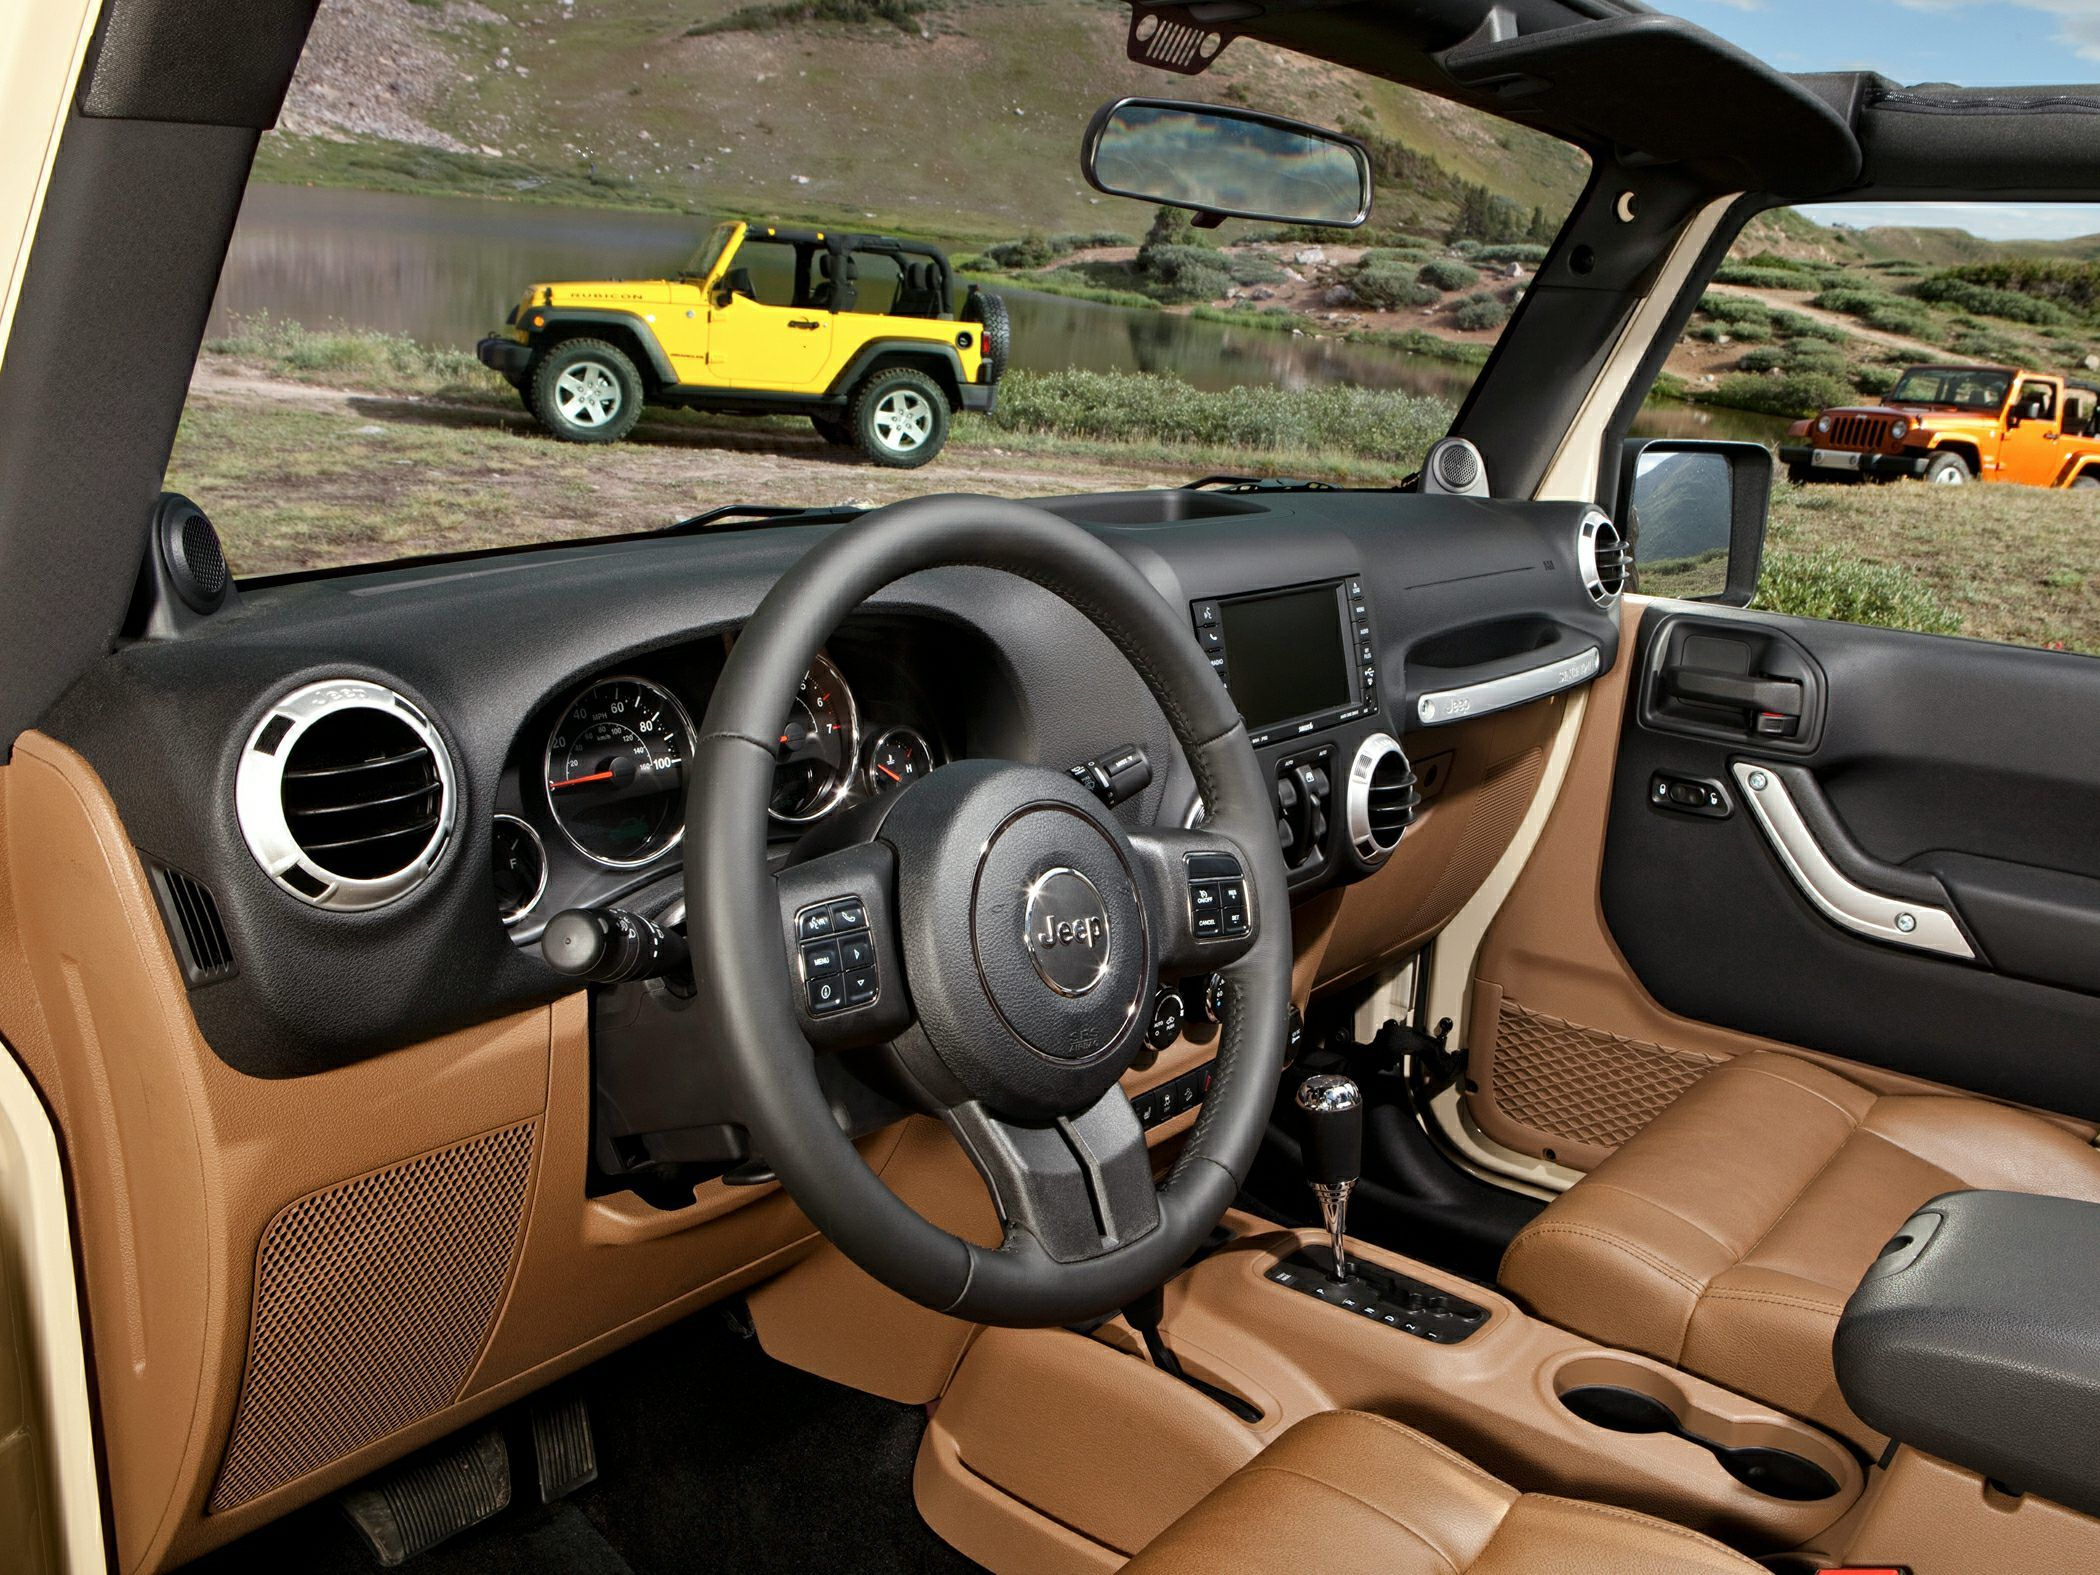 jeep wrangler interior 2014 images galleries with a bite. Black Bedroom Furniture Sets. Home Design Ideas